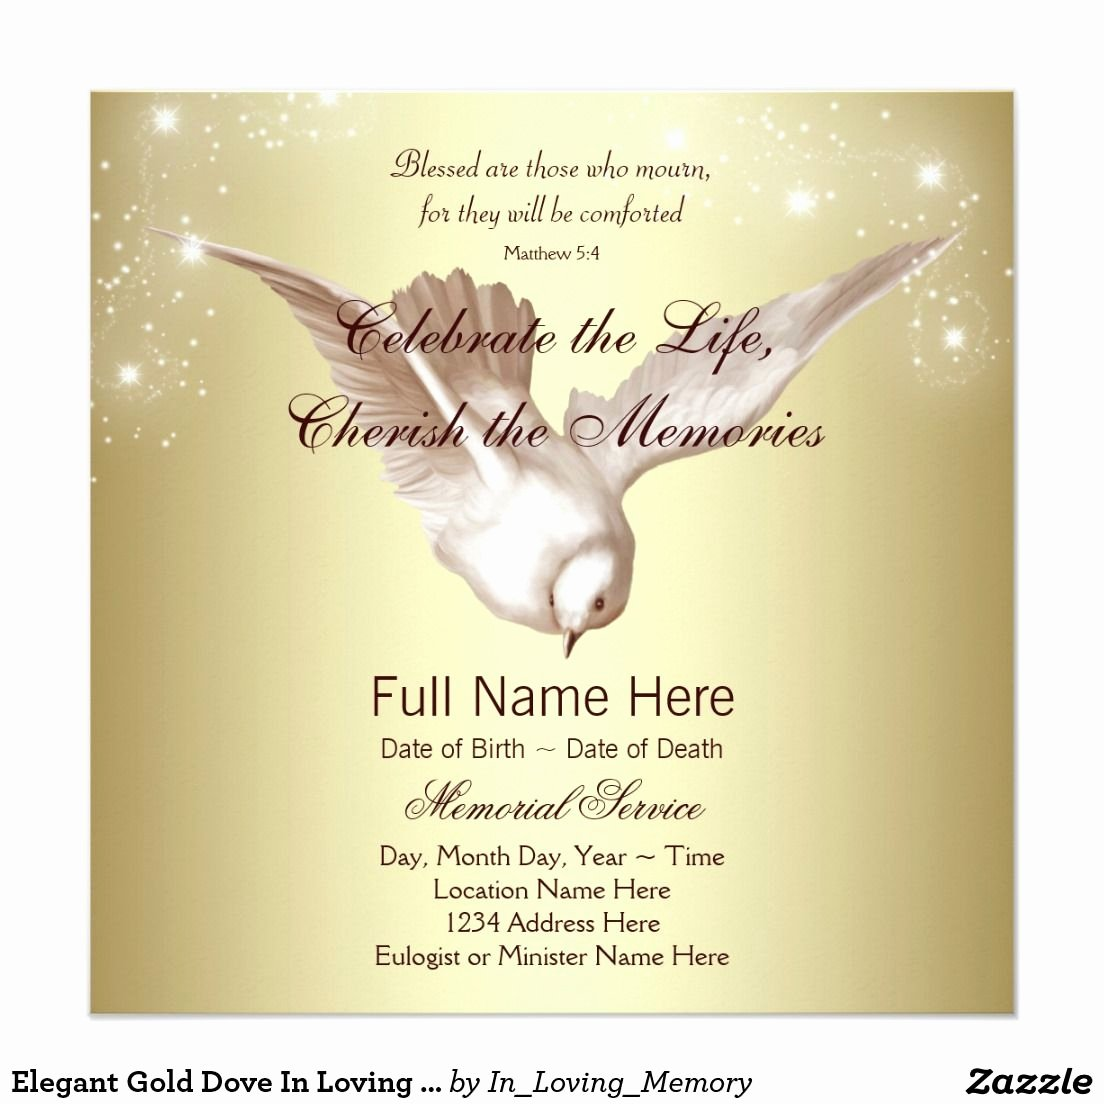 In Loving Memory Card Template Luxury Elegant Gold Dove In Loving Memory Memorial Invitation